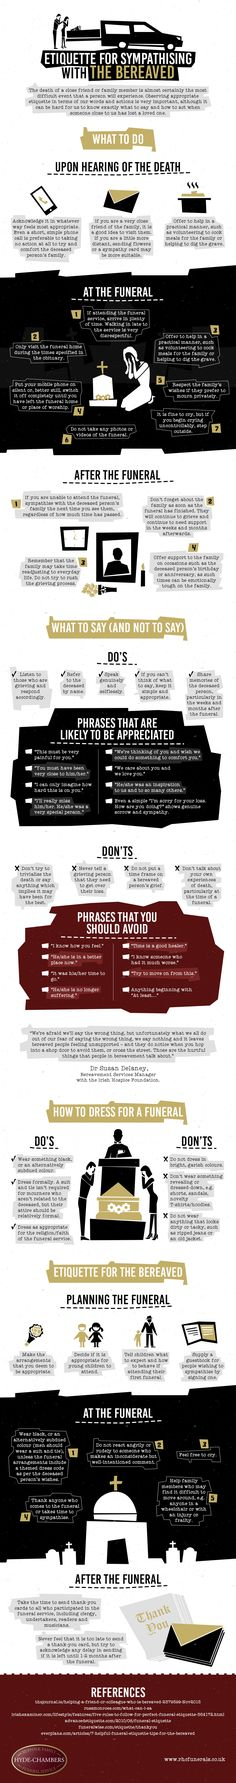 Funeral Etiquette for Sympathizing with the Bereaved – Inforgraphic. http://www.thefuneralsource.org/trad07.html